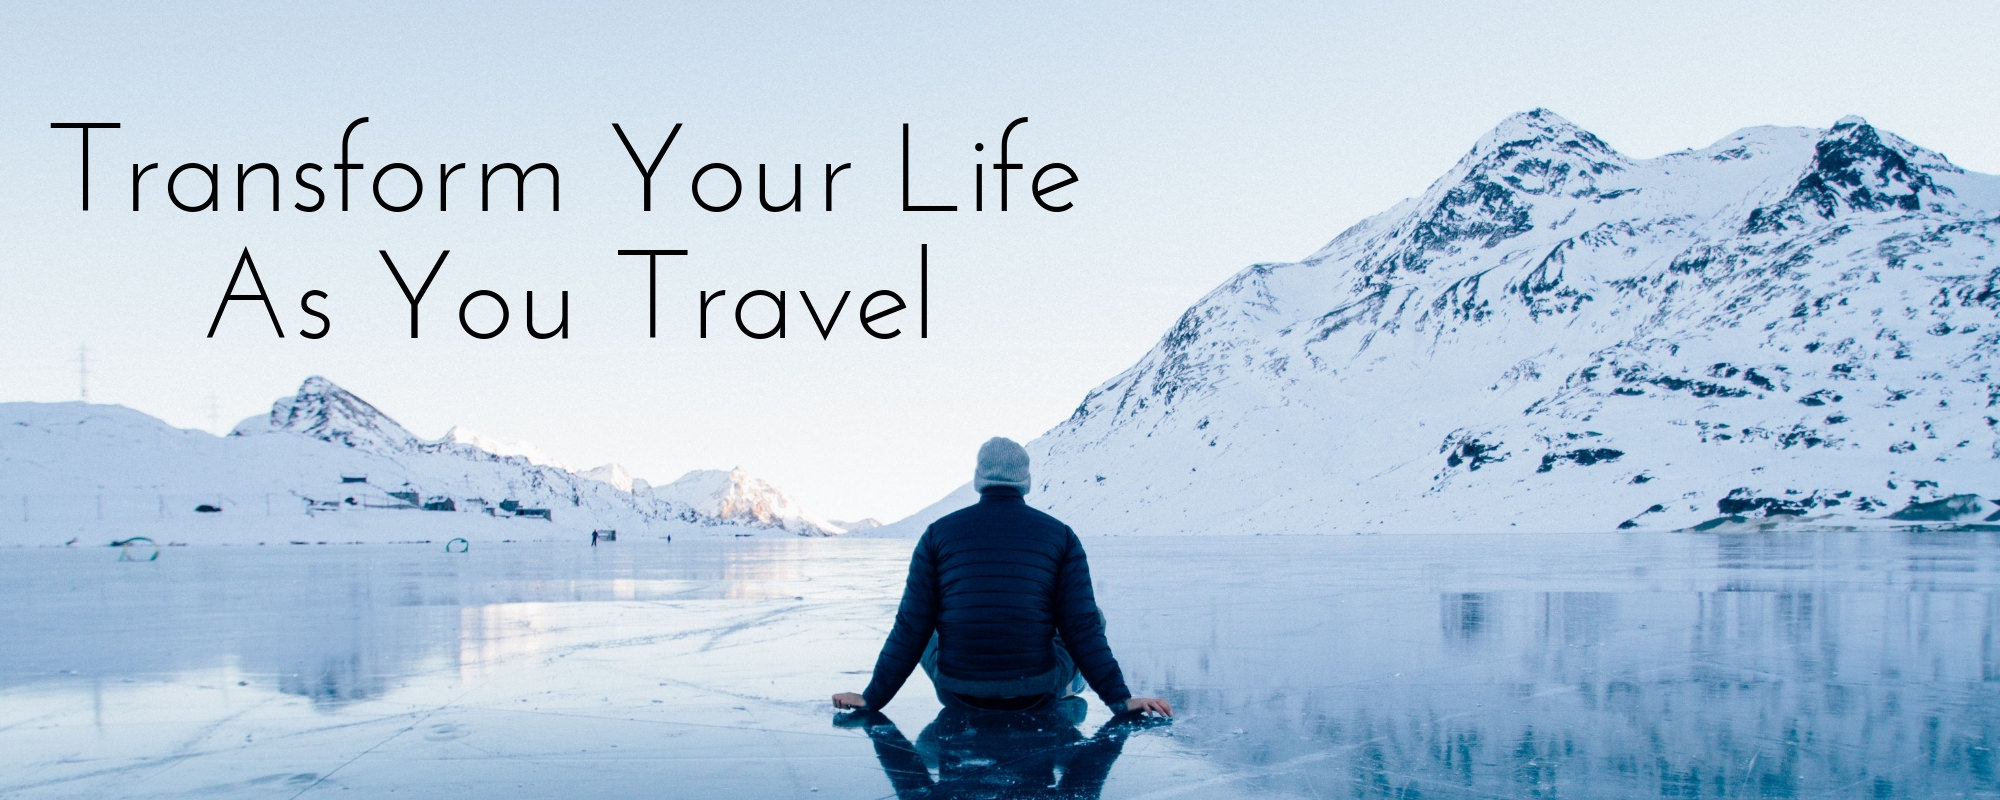 Authentic Traveling - Transformative Travel